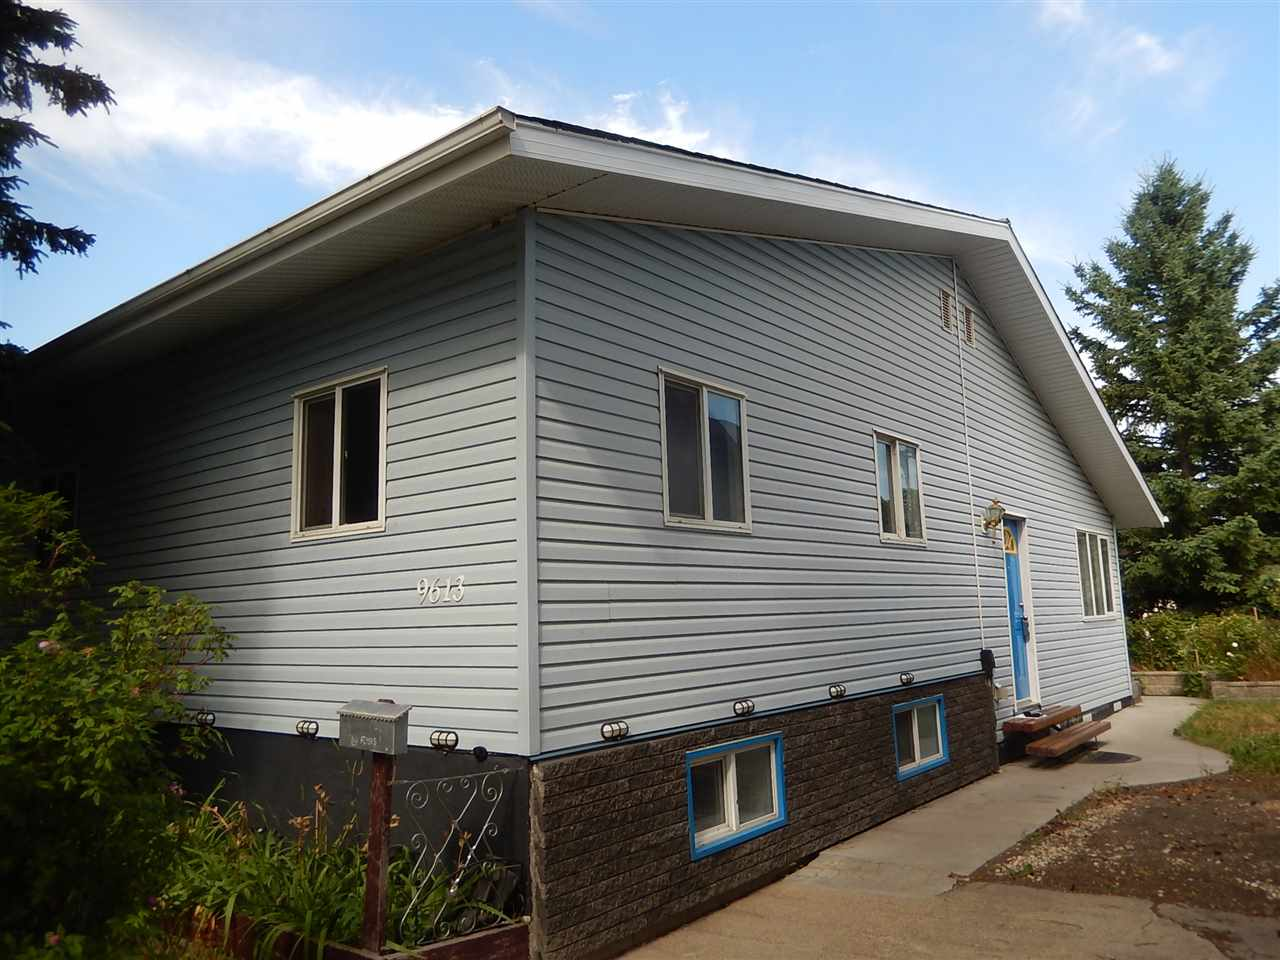 Main Photo: 9613 154 Street in Edmonton: Zone 22 House for sale : MLS® # E4072954